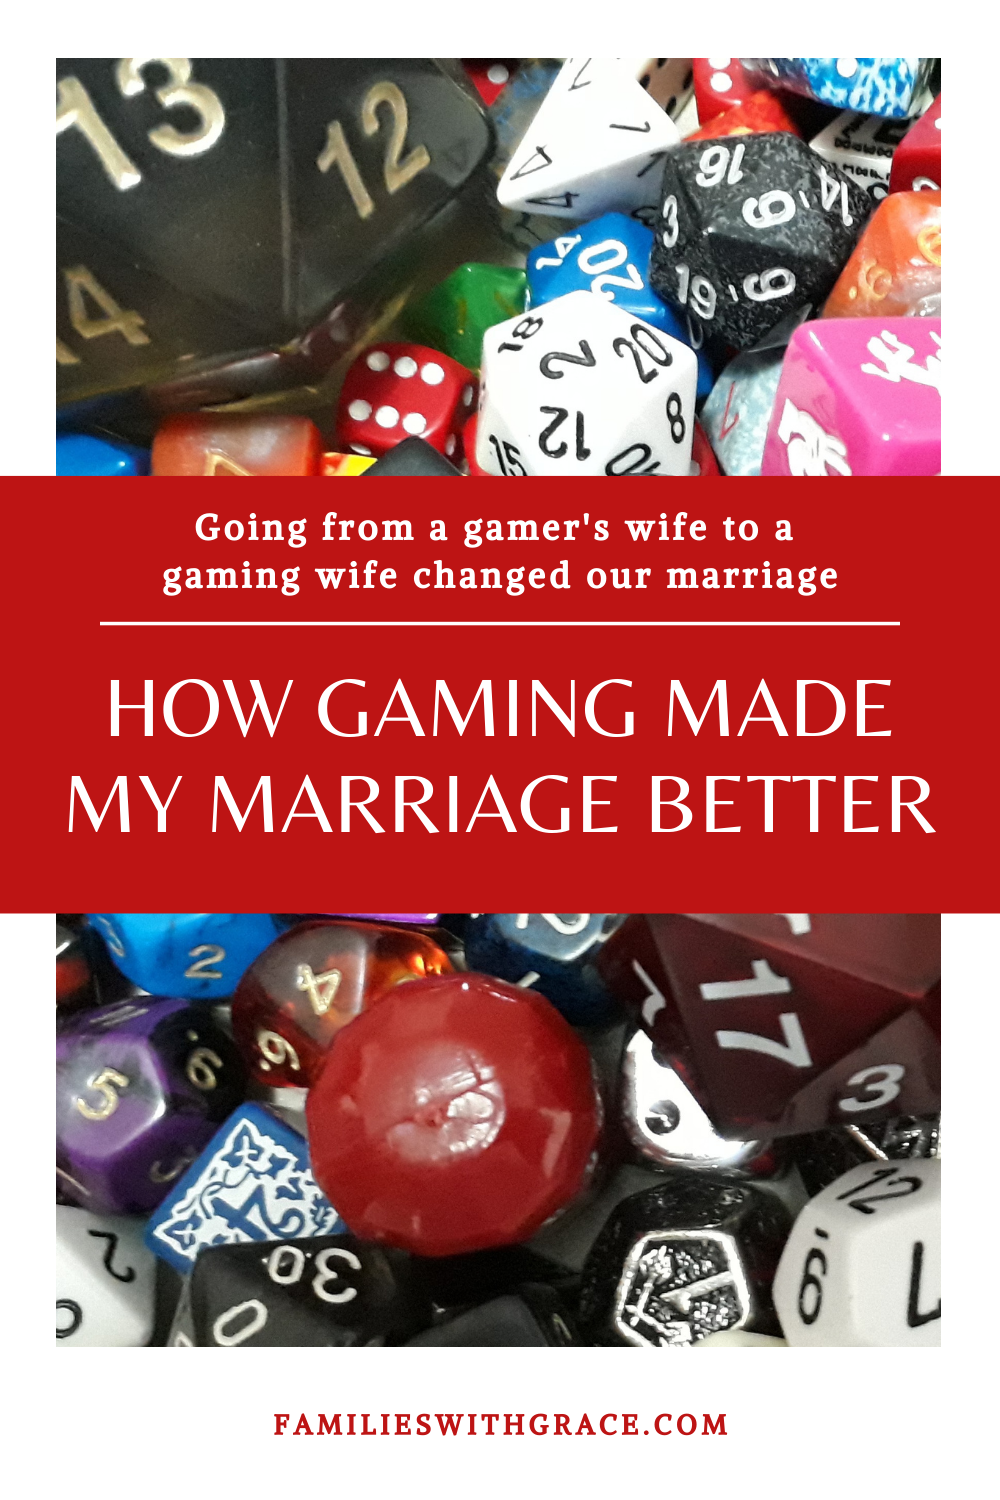 How gaming made my marriage better